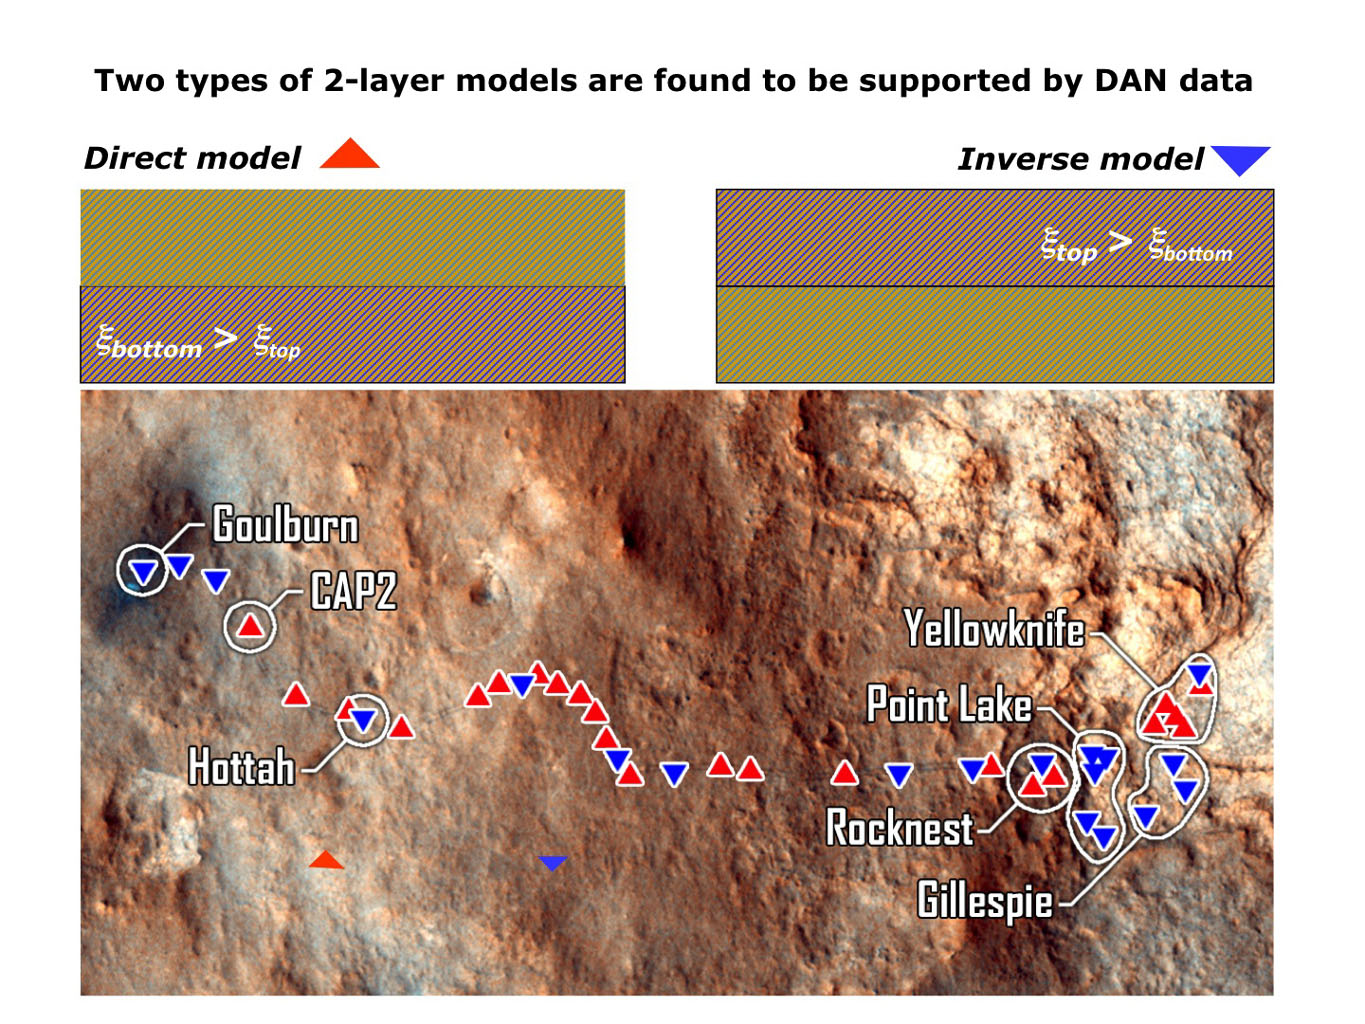 The Dynamic Albedo of Neutrons (DAN) instrument on NASA's Mars rover Curiosity detects even very small amounts of water in the ground beneath the rover, primarily water bound into the crystal structure of hydrated minerals.